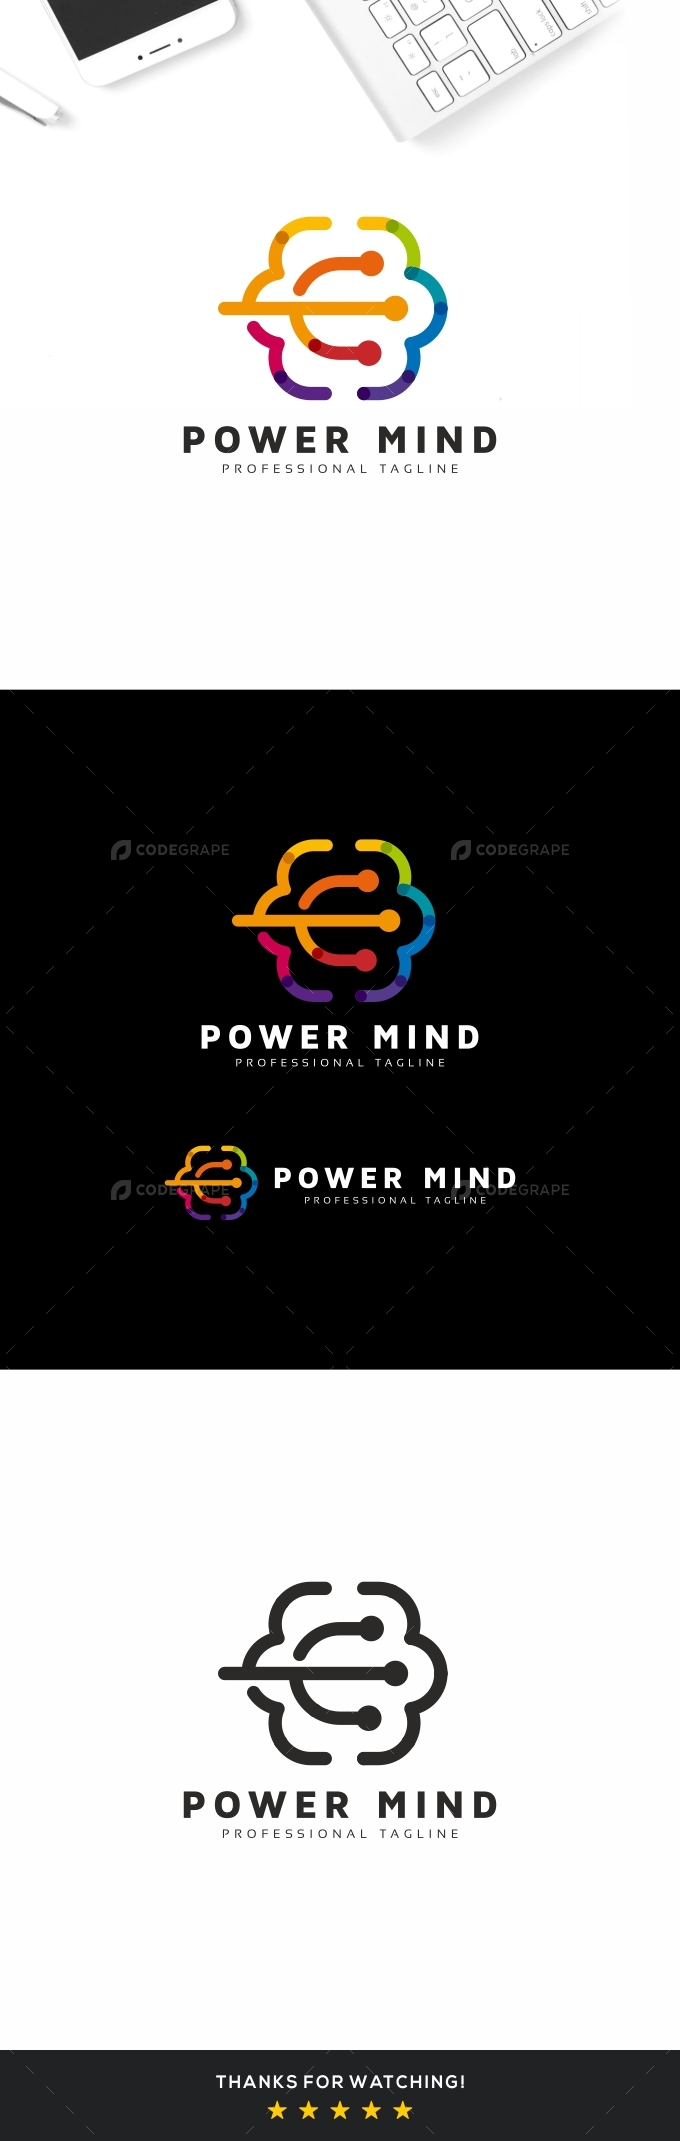 Power Mind Logo